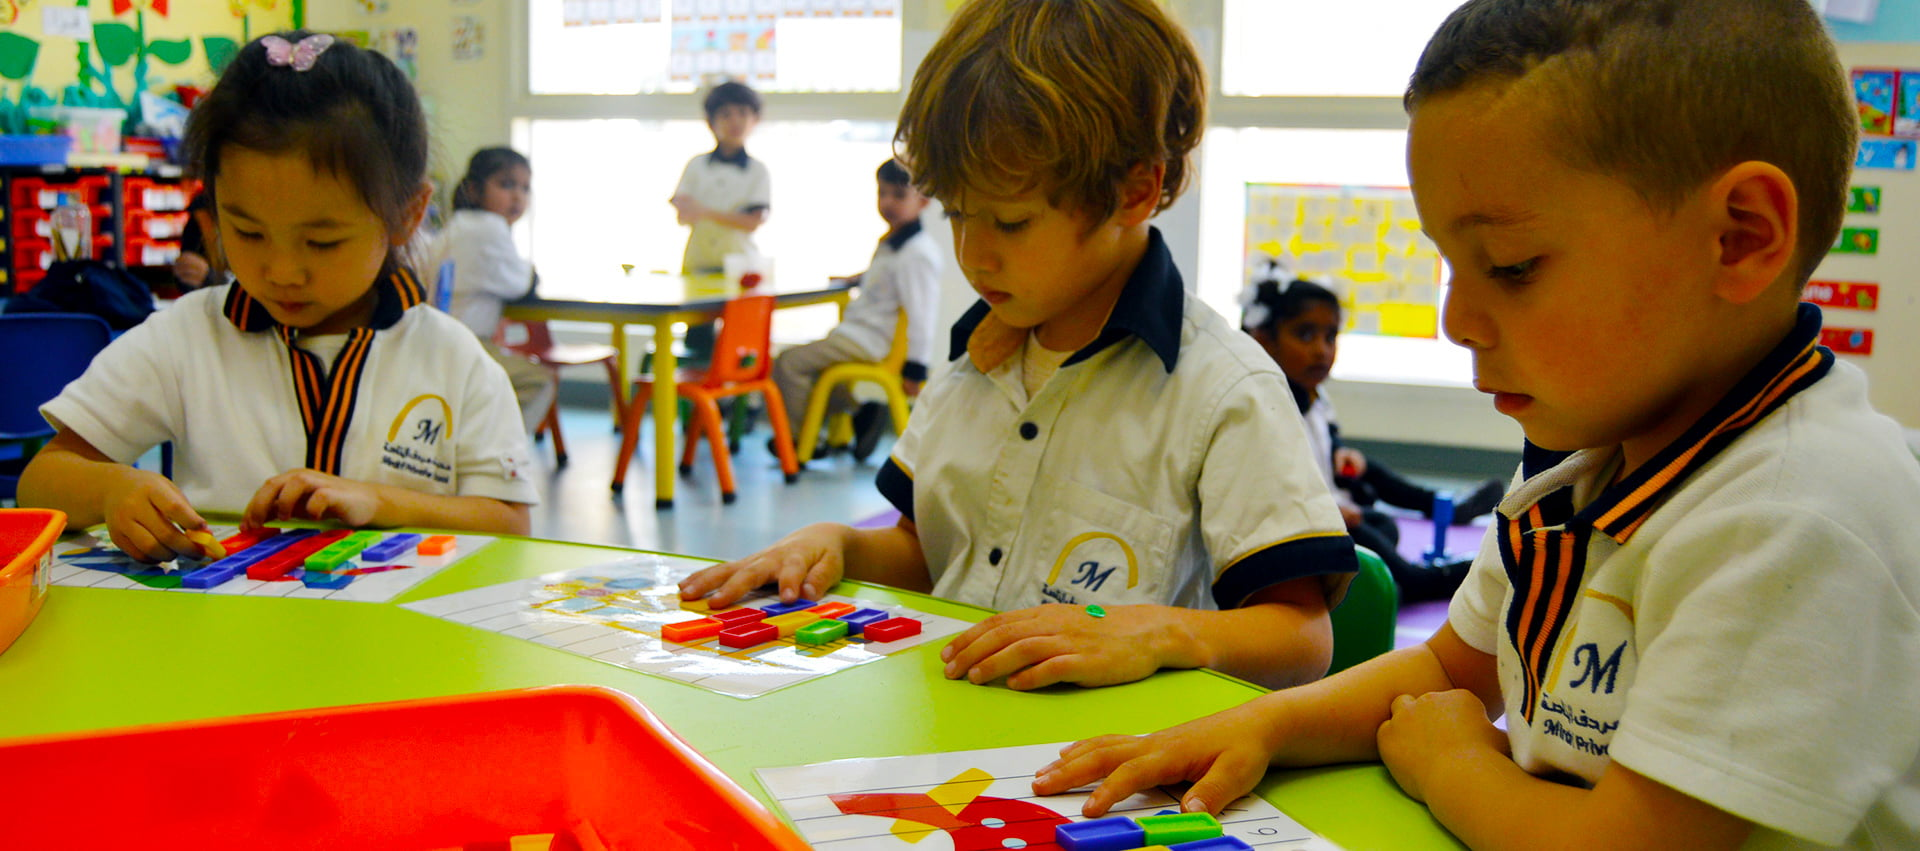 Image of children learning at Mirdif private School in Dubai